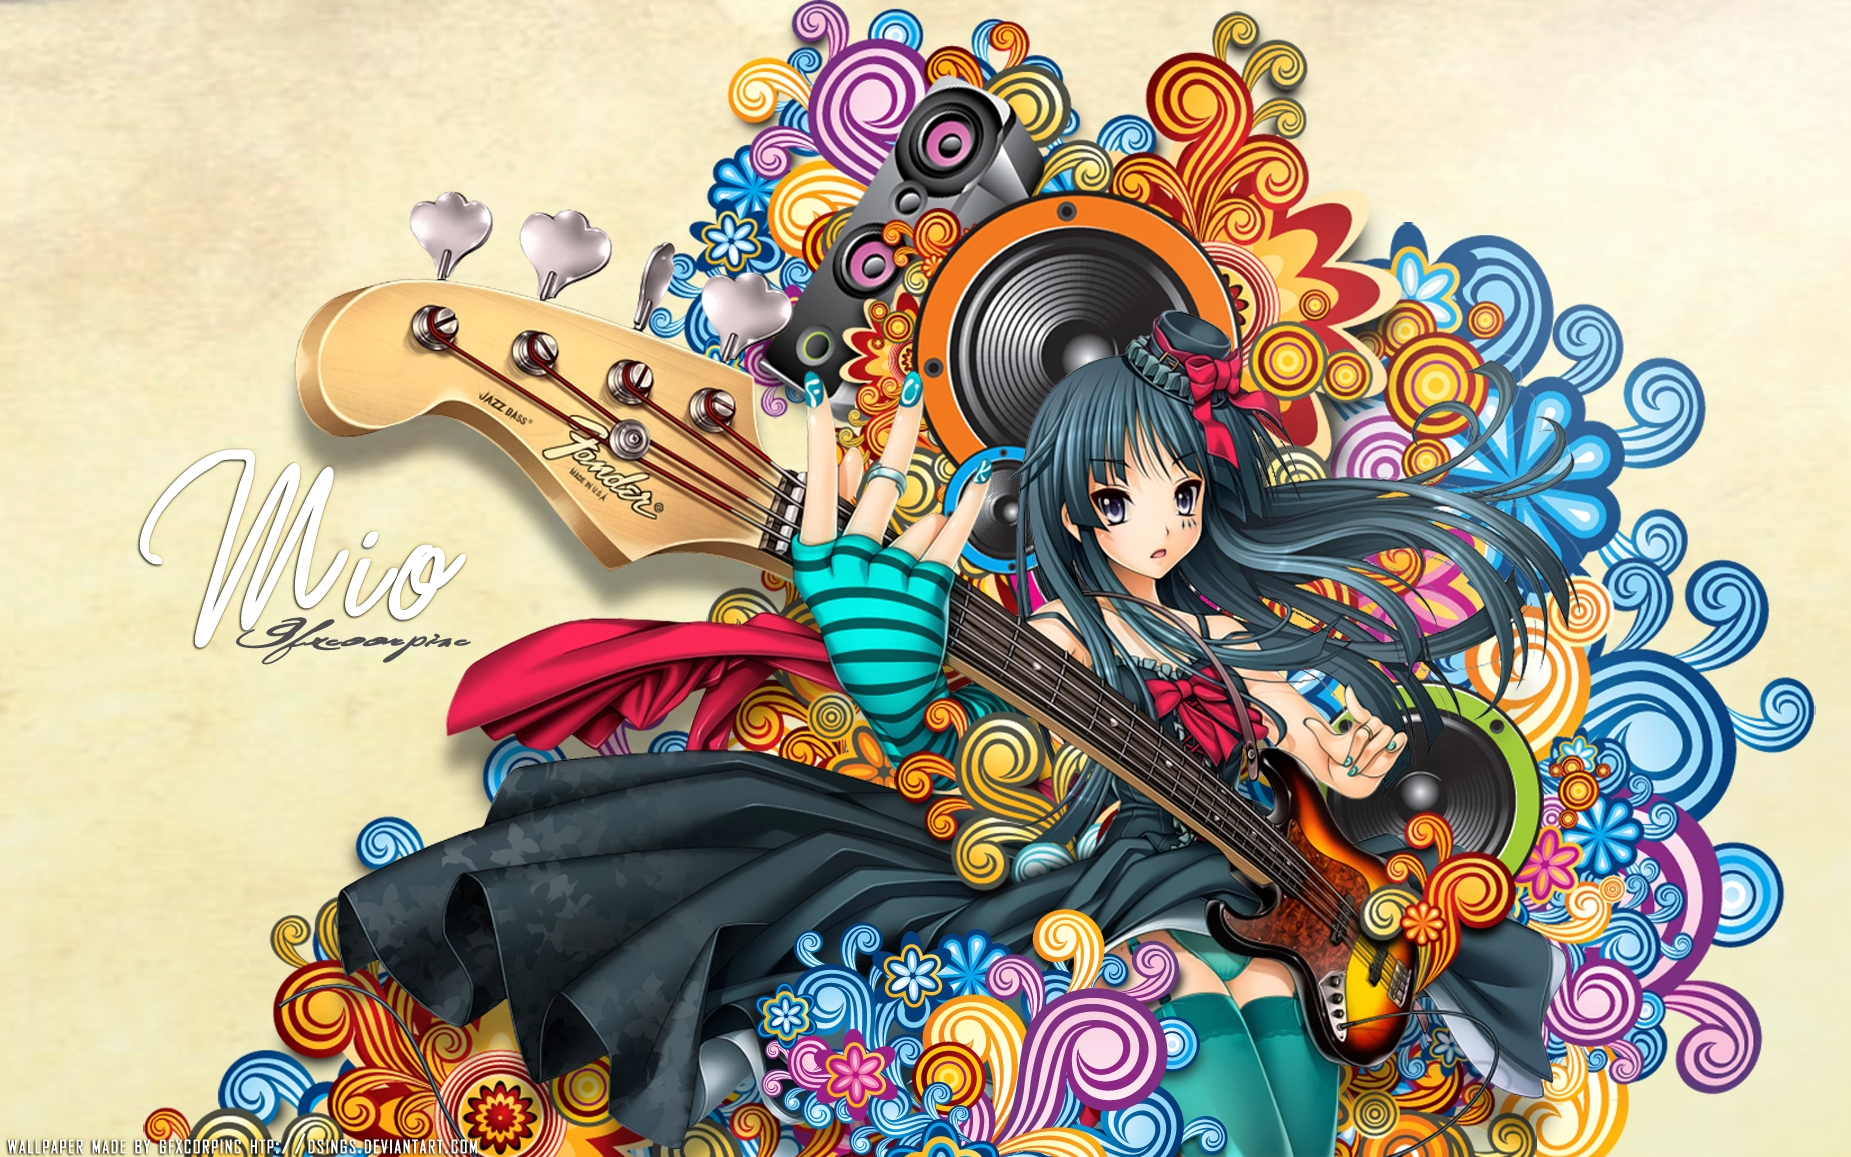 Chicas de anime y guitarras - 1851x1157